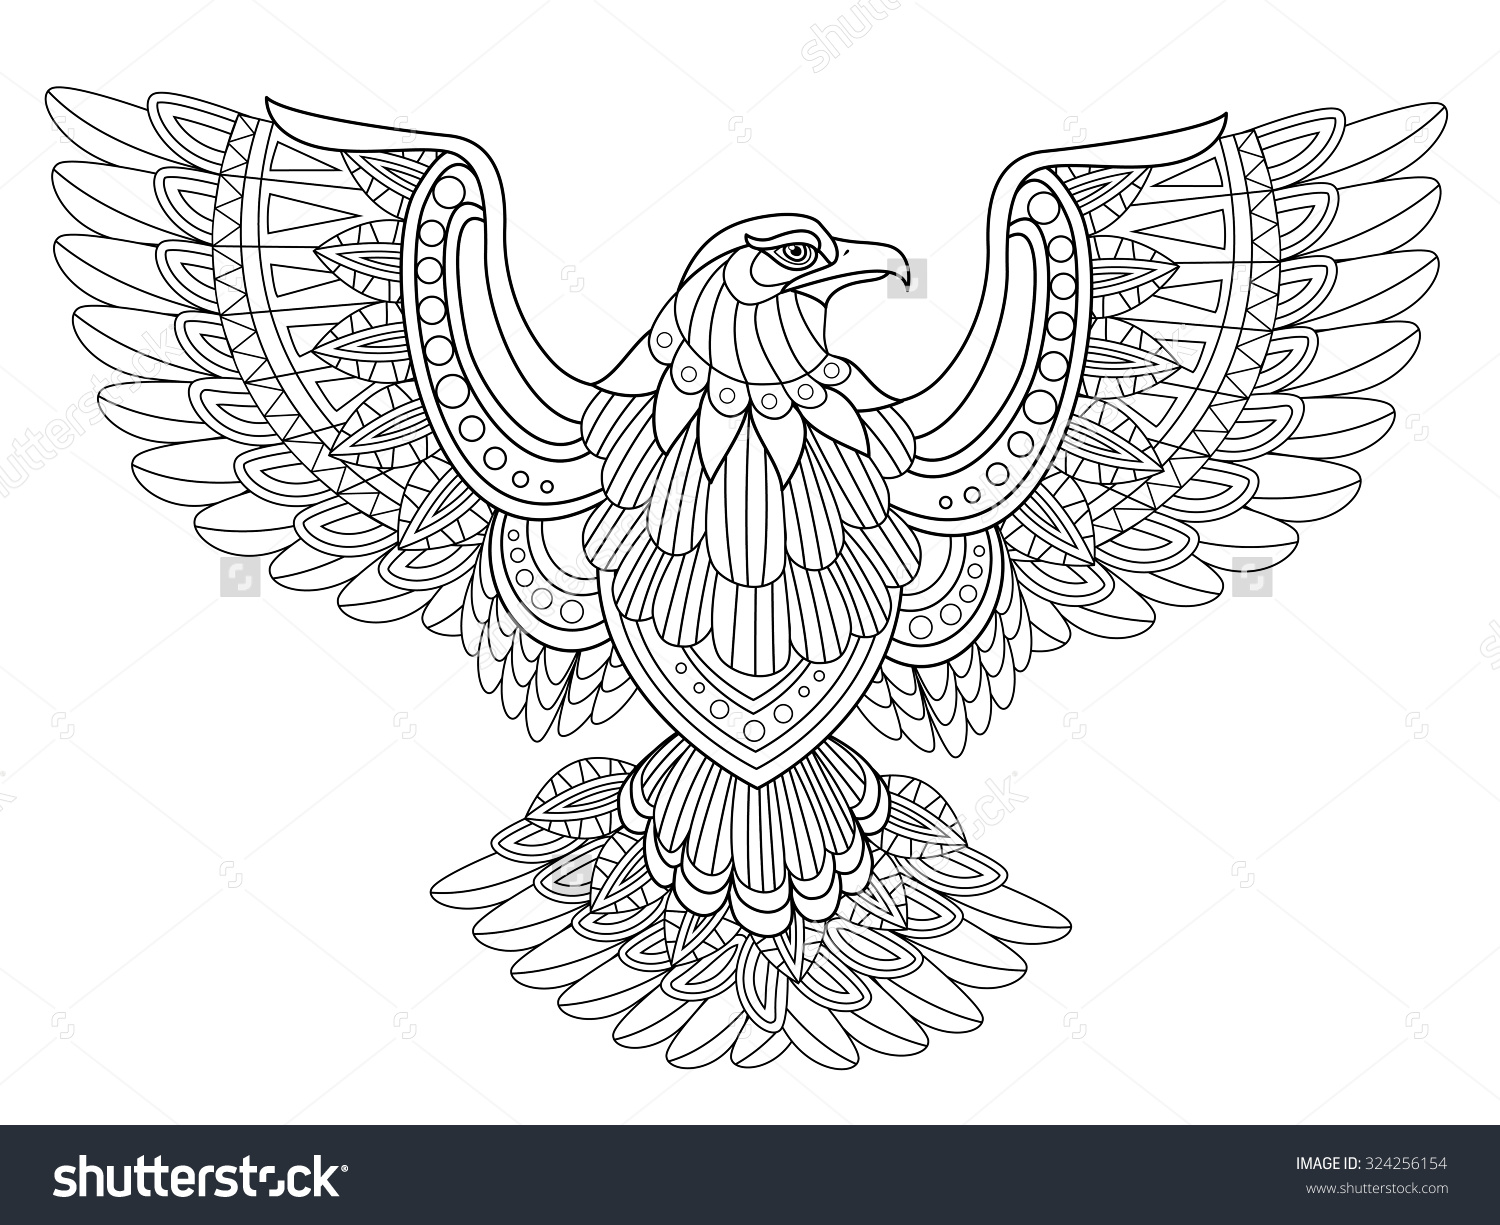 American eagle coloring pages - Flying Eagle Coloring Page In Exquisite Style